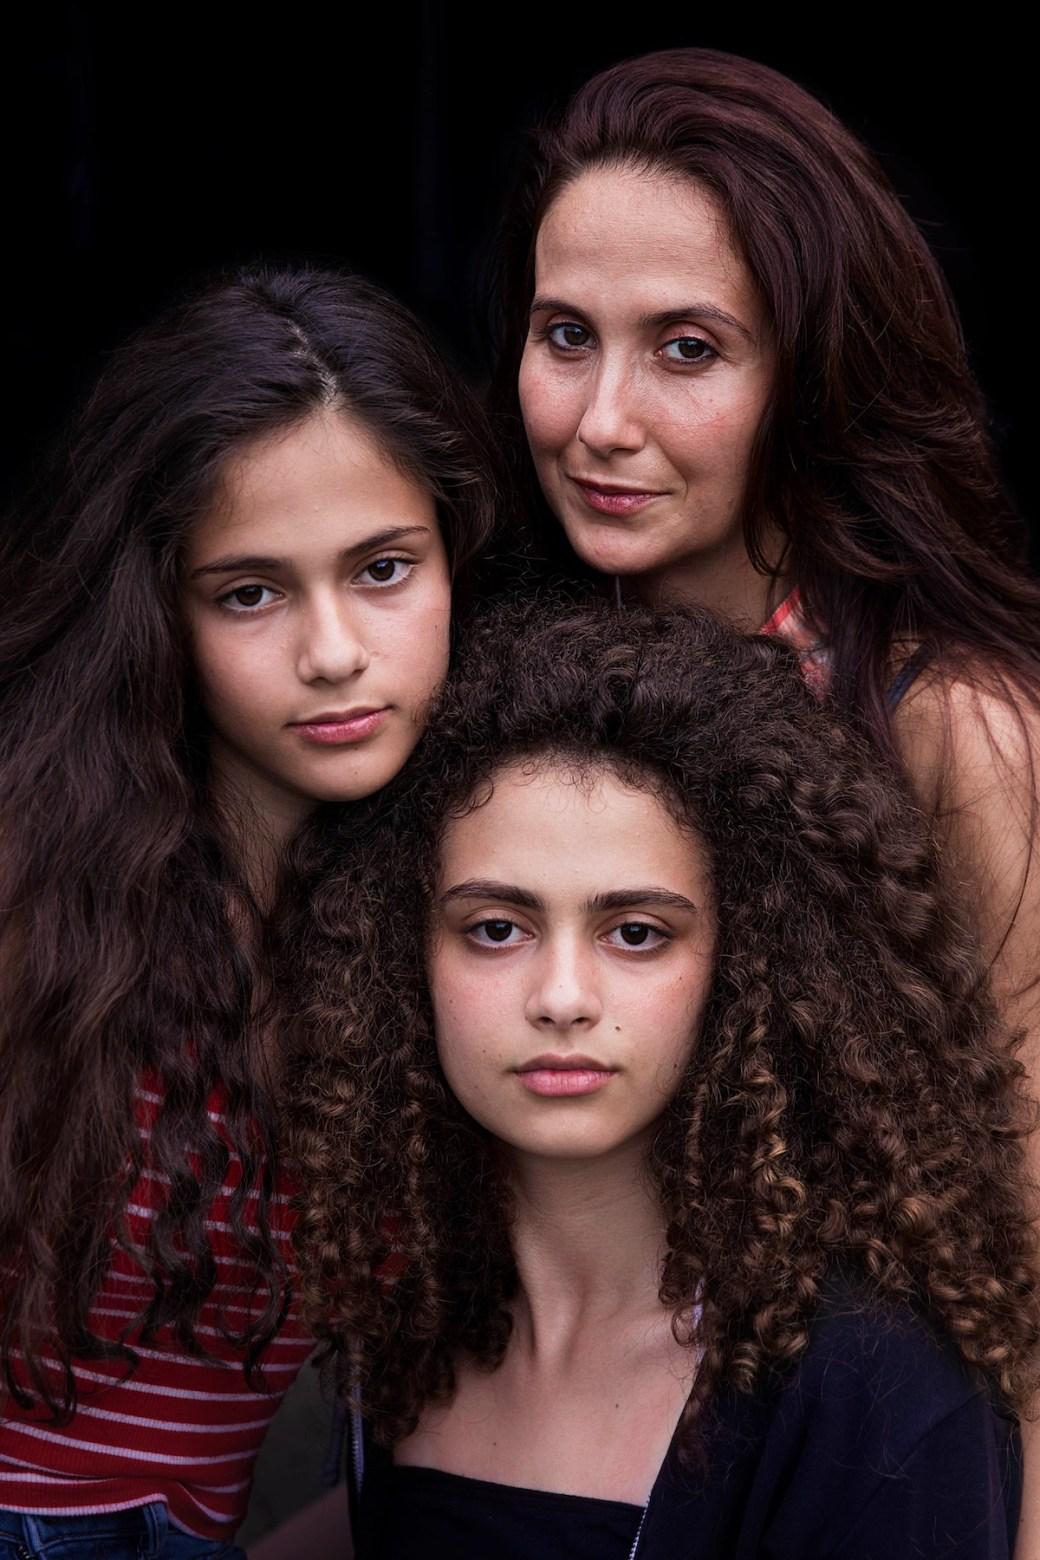 Portrait of a woman with her two daughters in Bucharest